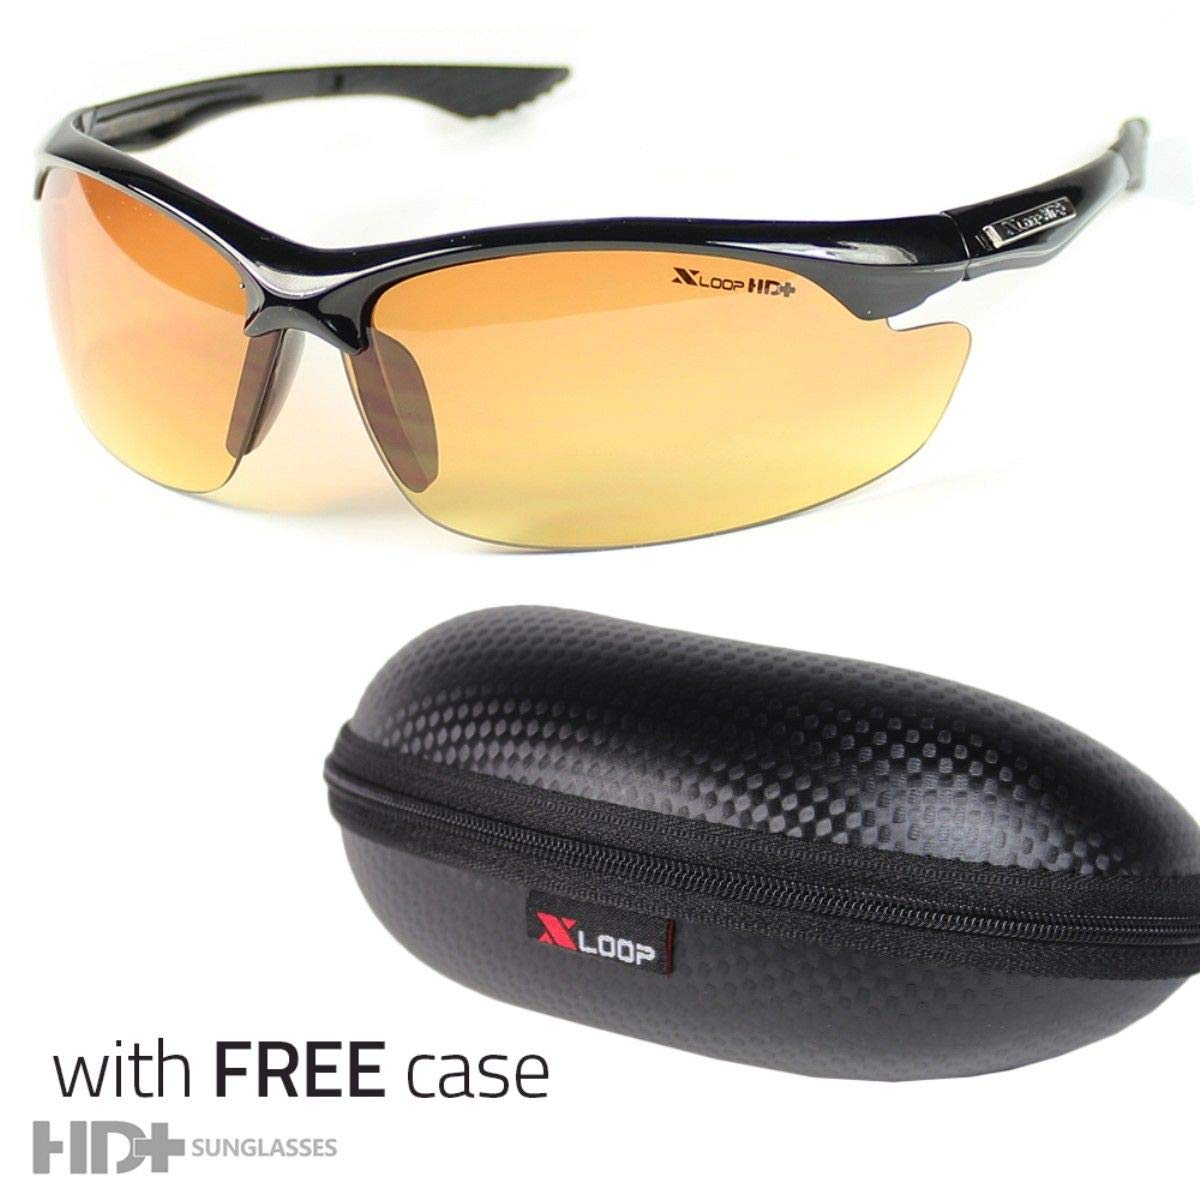 Polarized SPORT WRAP HD NIGHT DRIVING YELLOW SUNGLASSES HIGH DEFINITION CASE